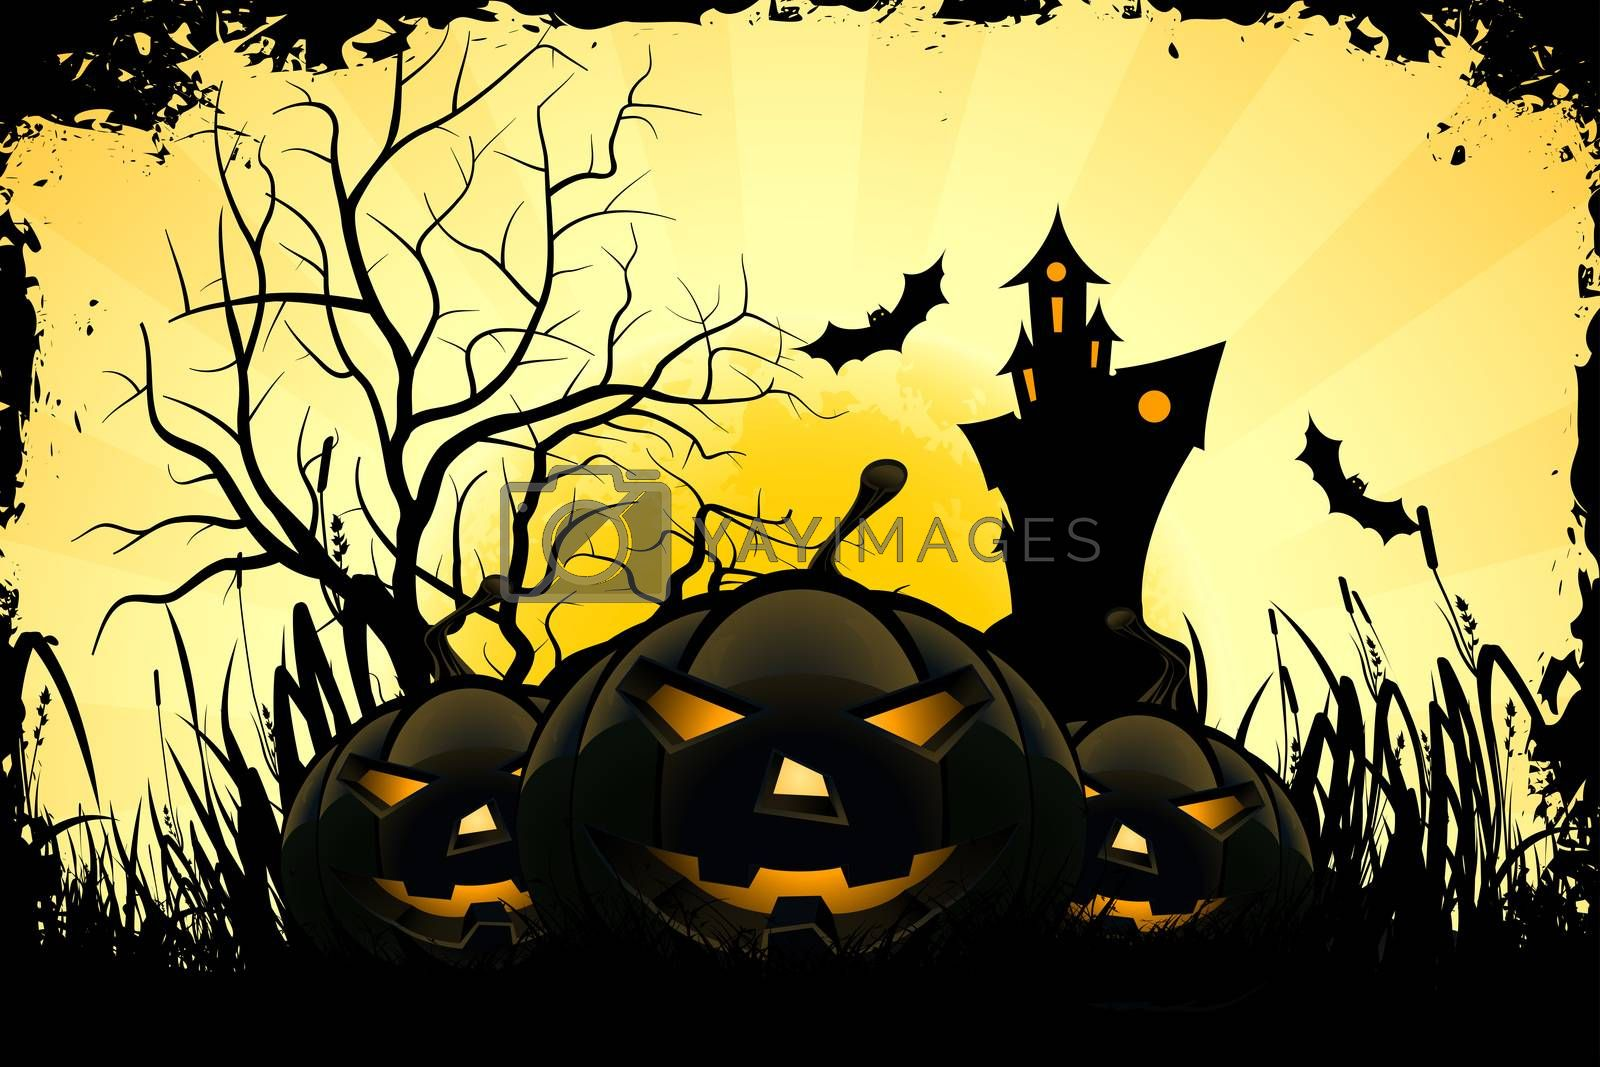 Grunge Halloween Party Background with Pumpkins, House, Tree, Grass and Bats